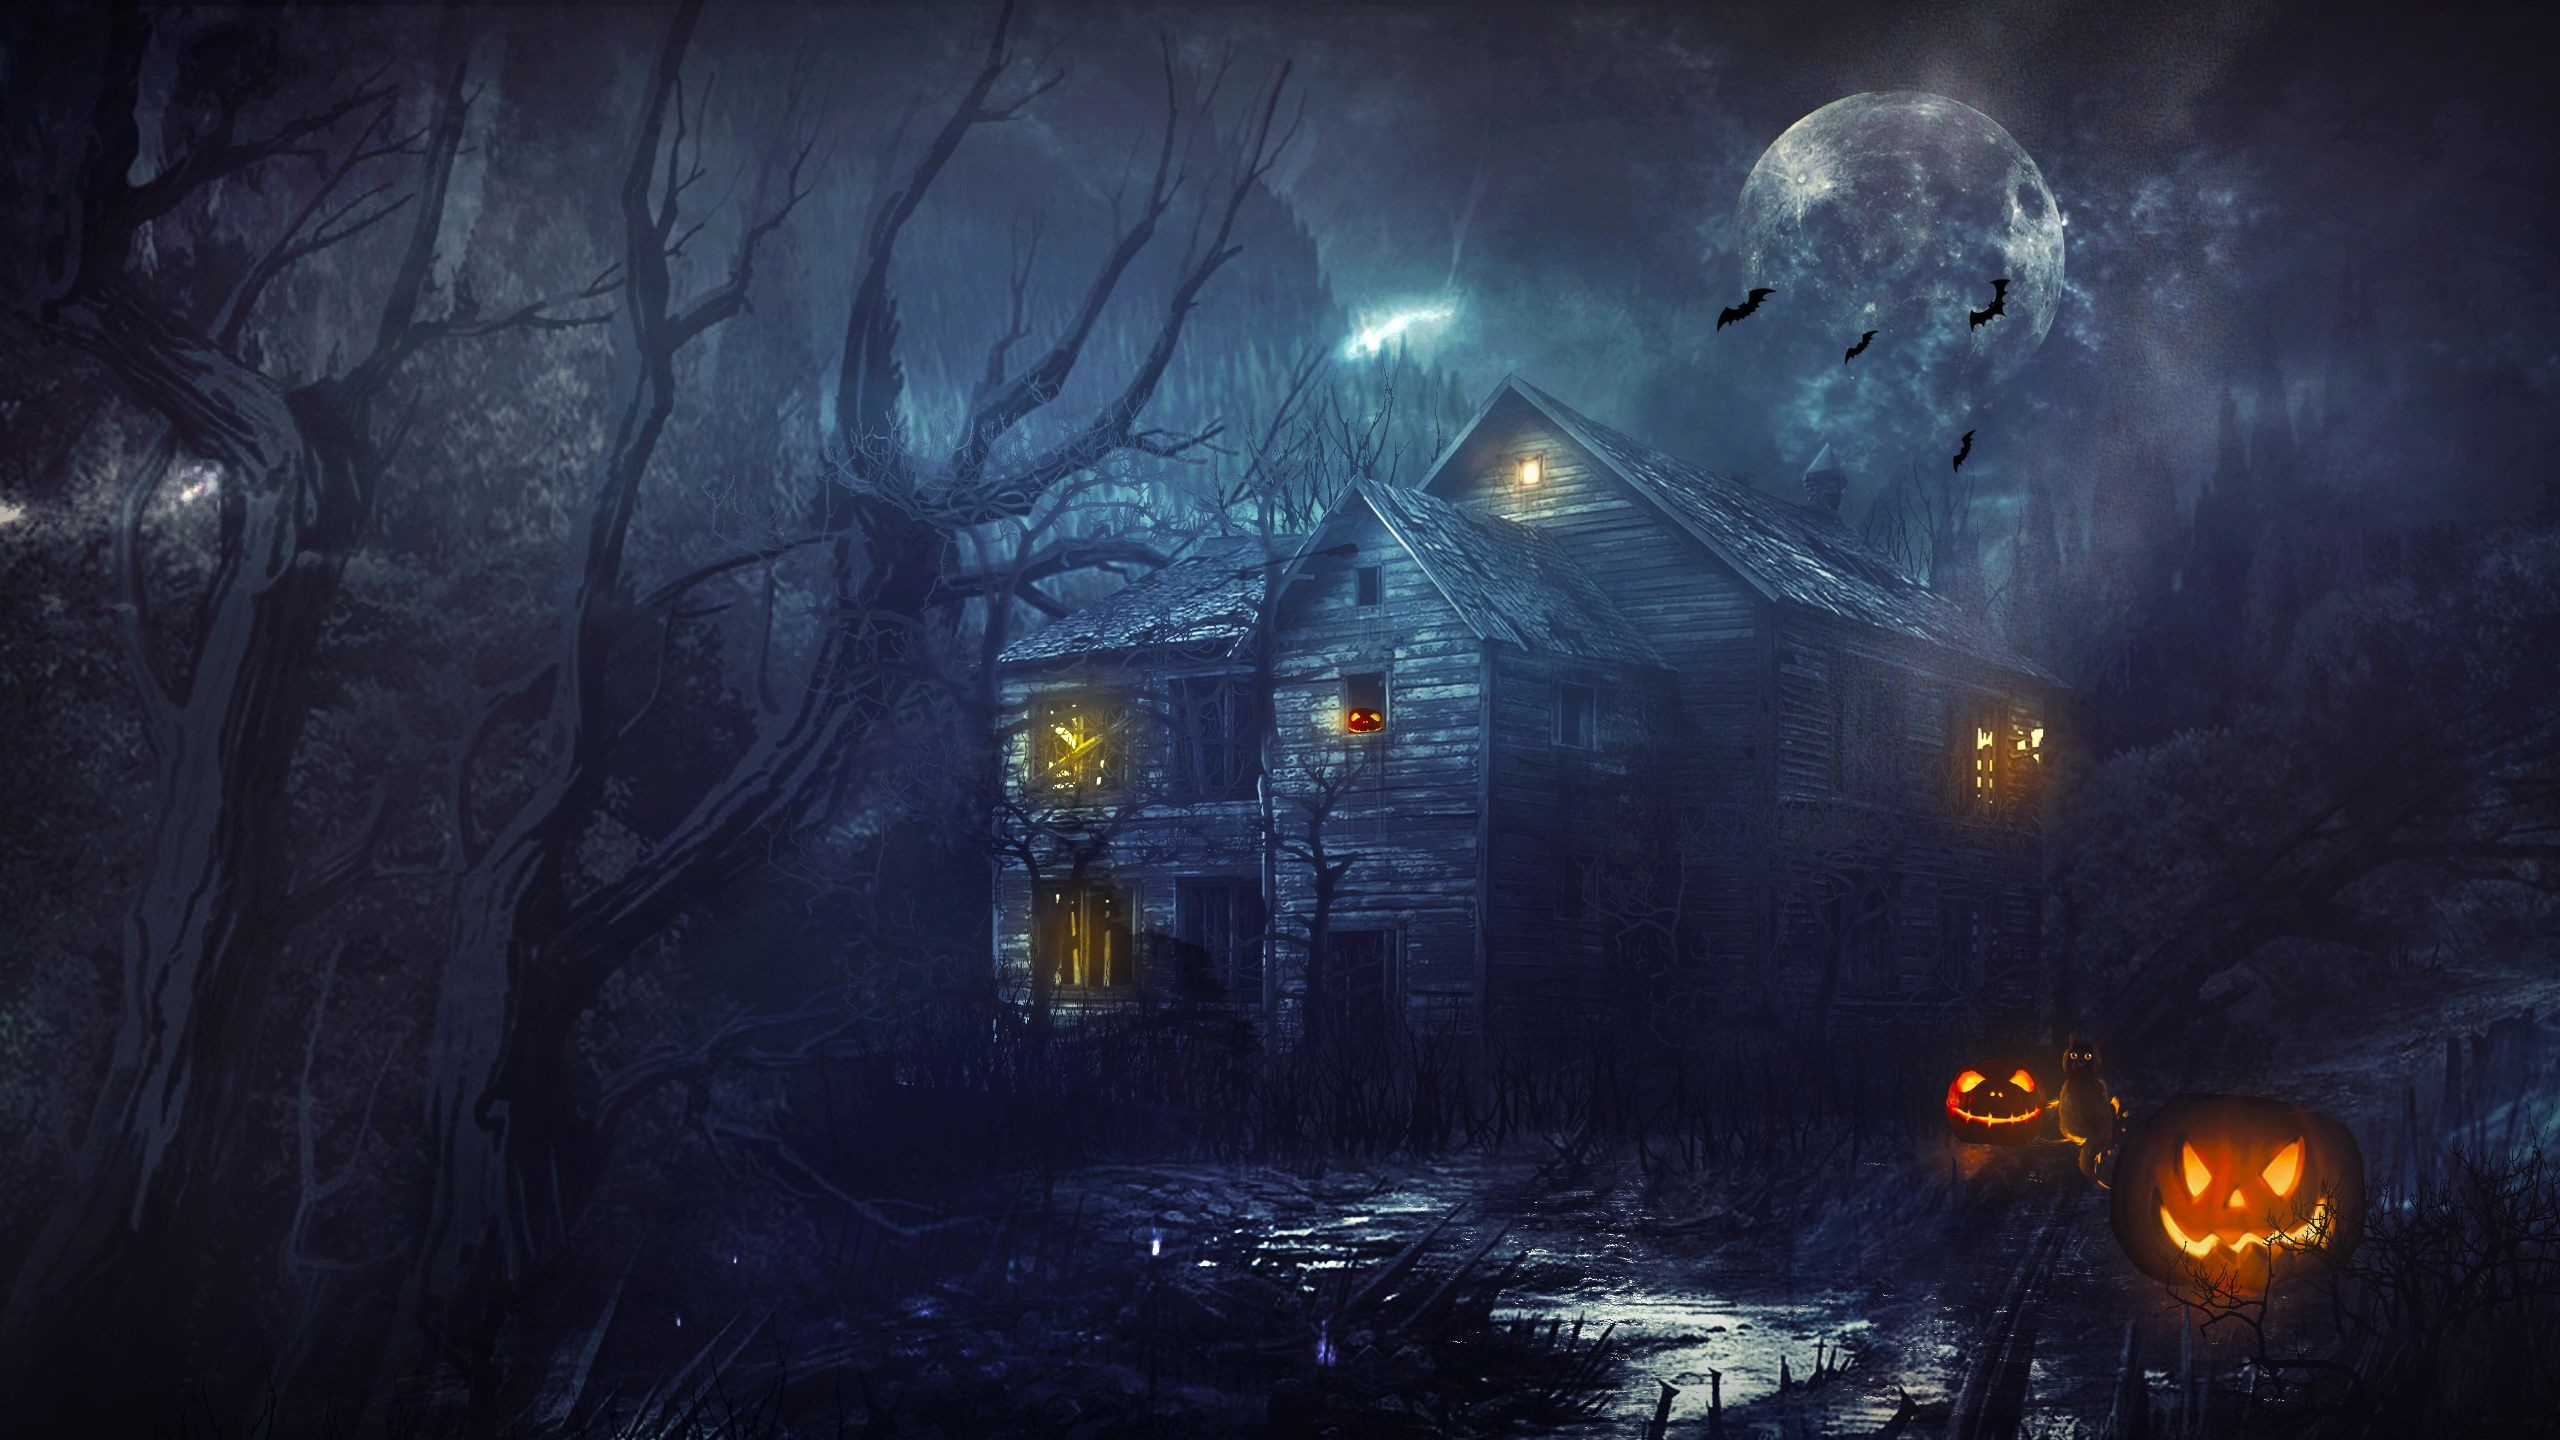 Spooky Forest Wallpapers